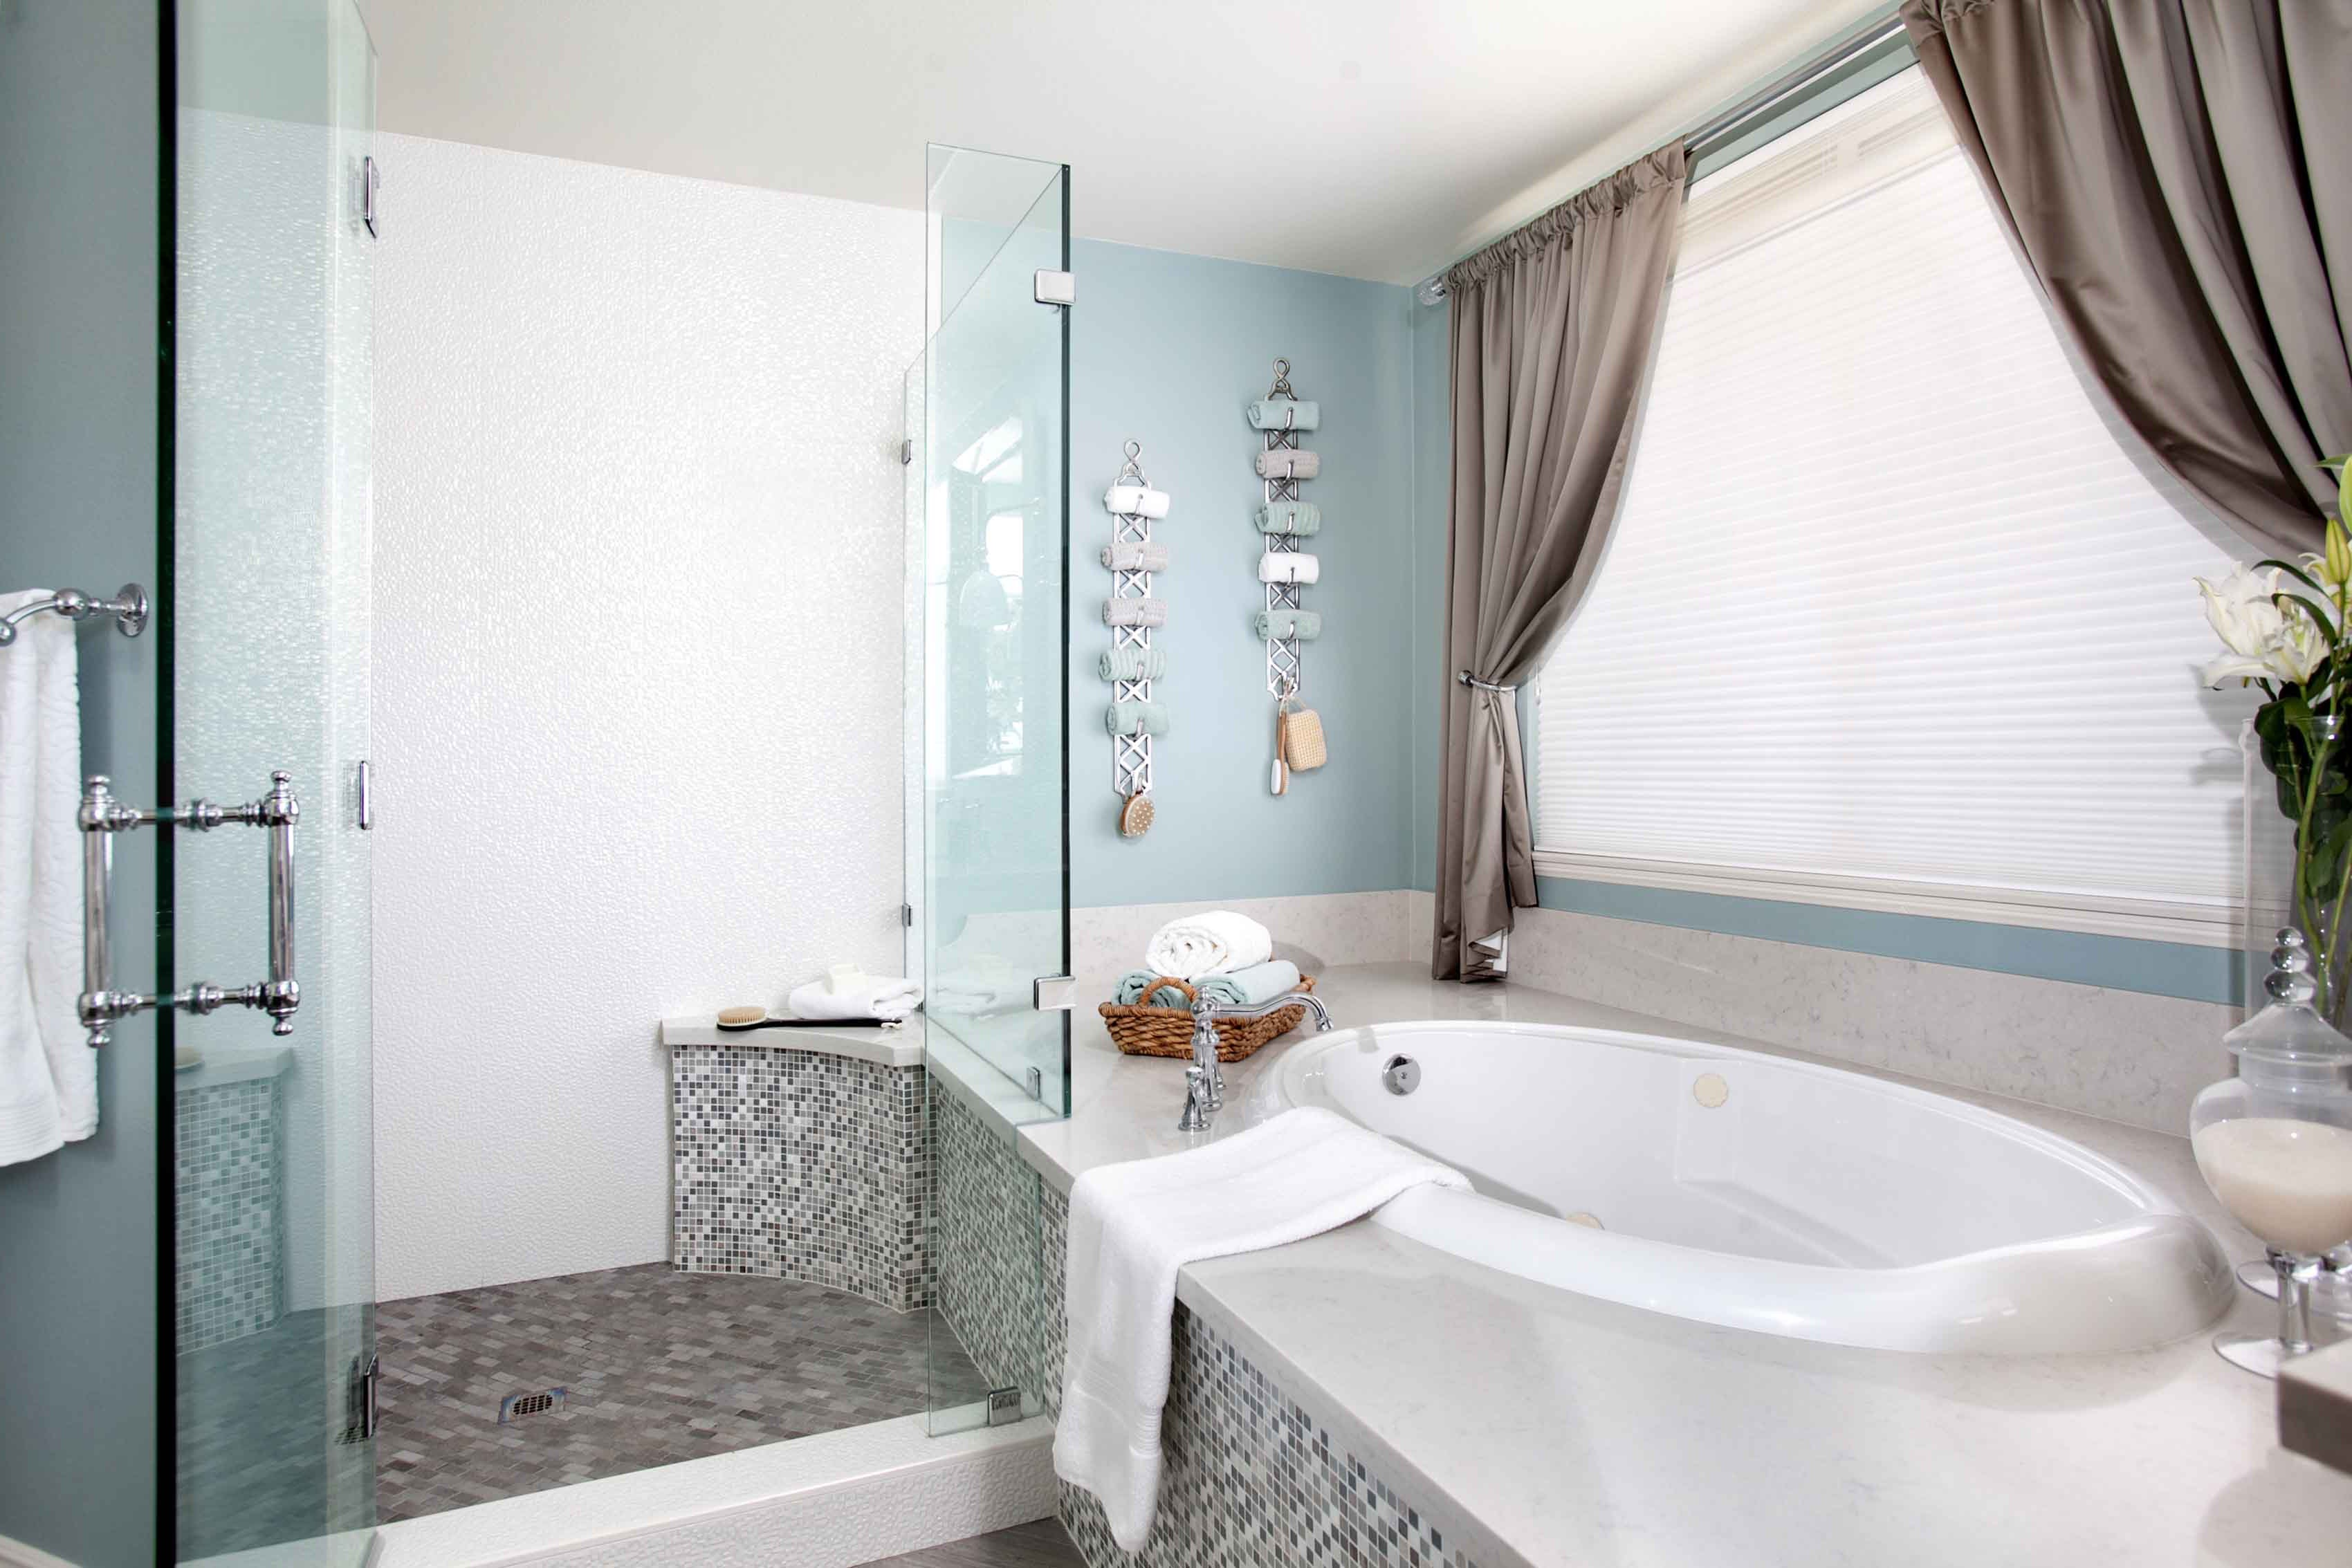 Bathroom: Bathroom Shower and Tub Combination Ideas (#8 of 19 Photos)